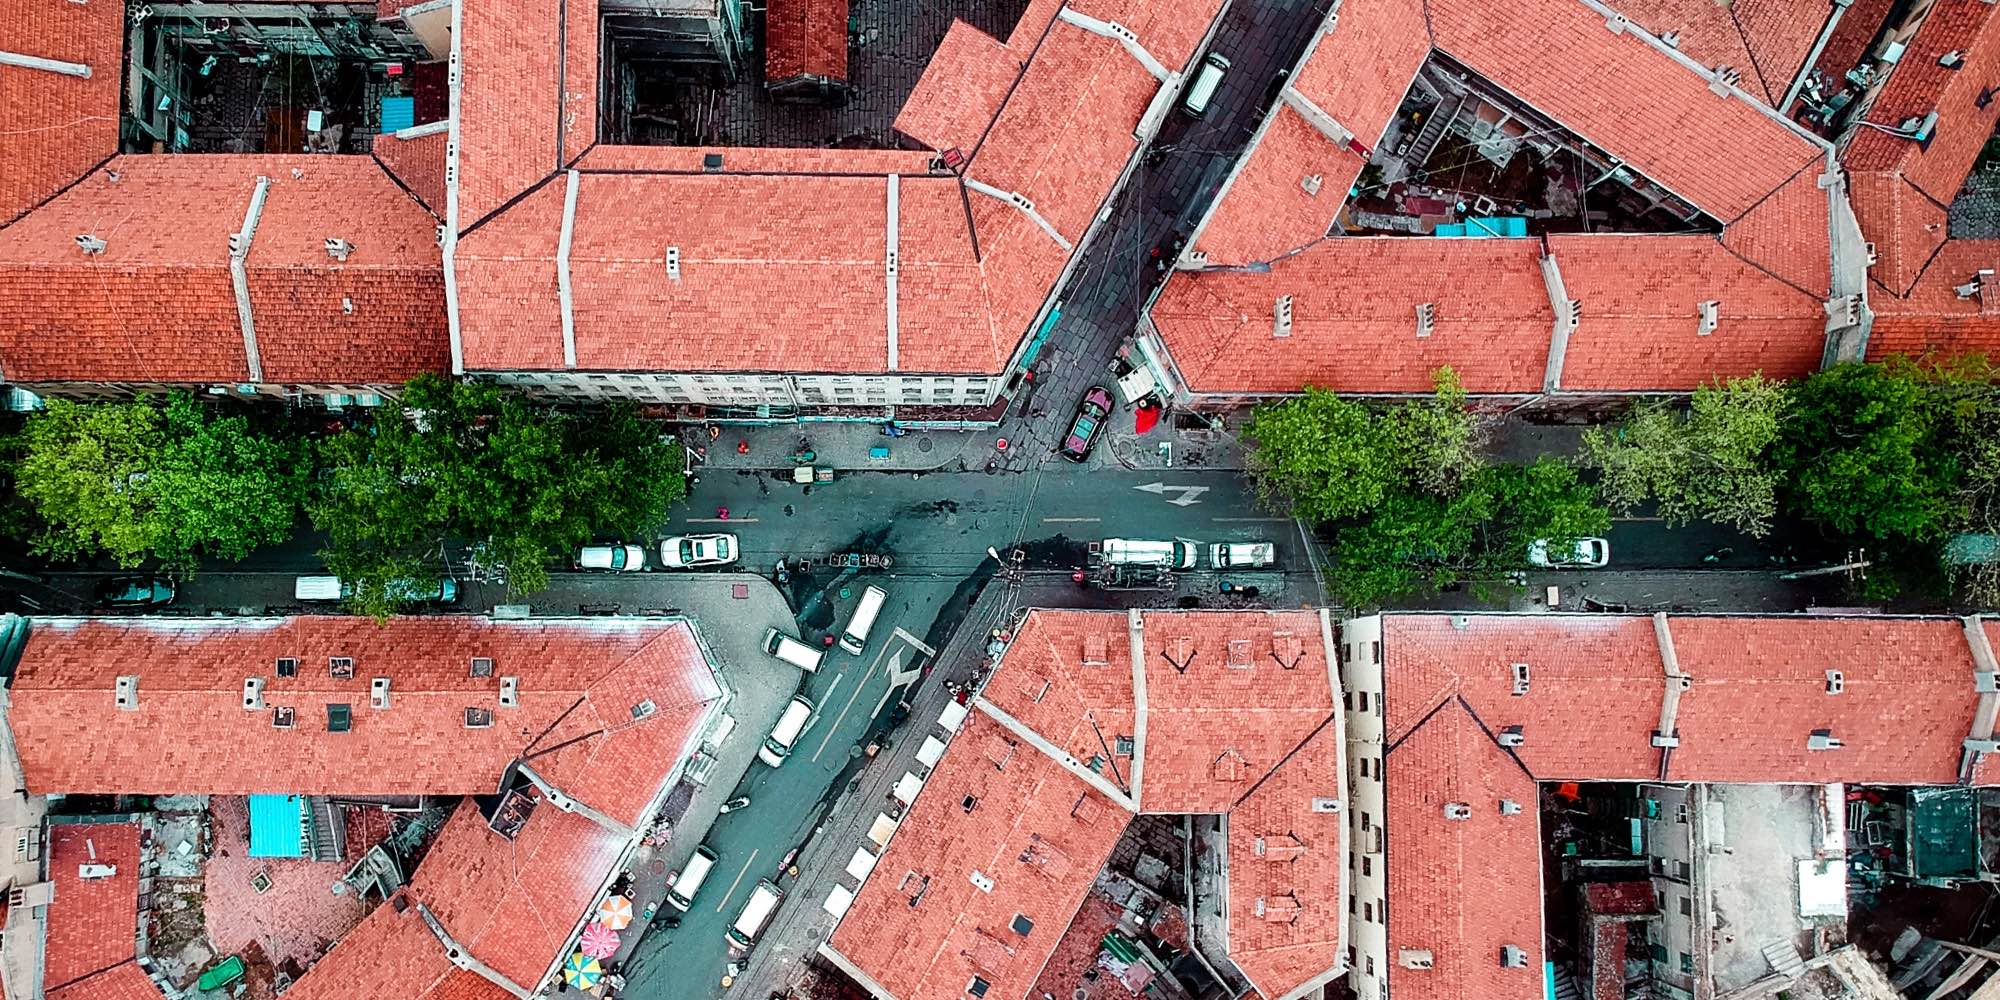 Arial view of a street